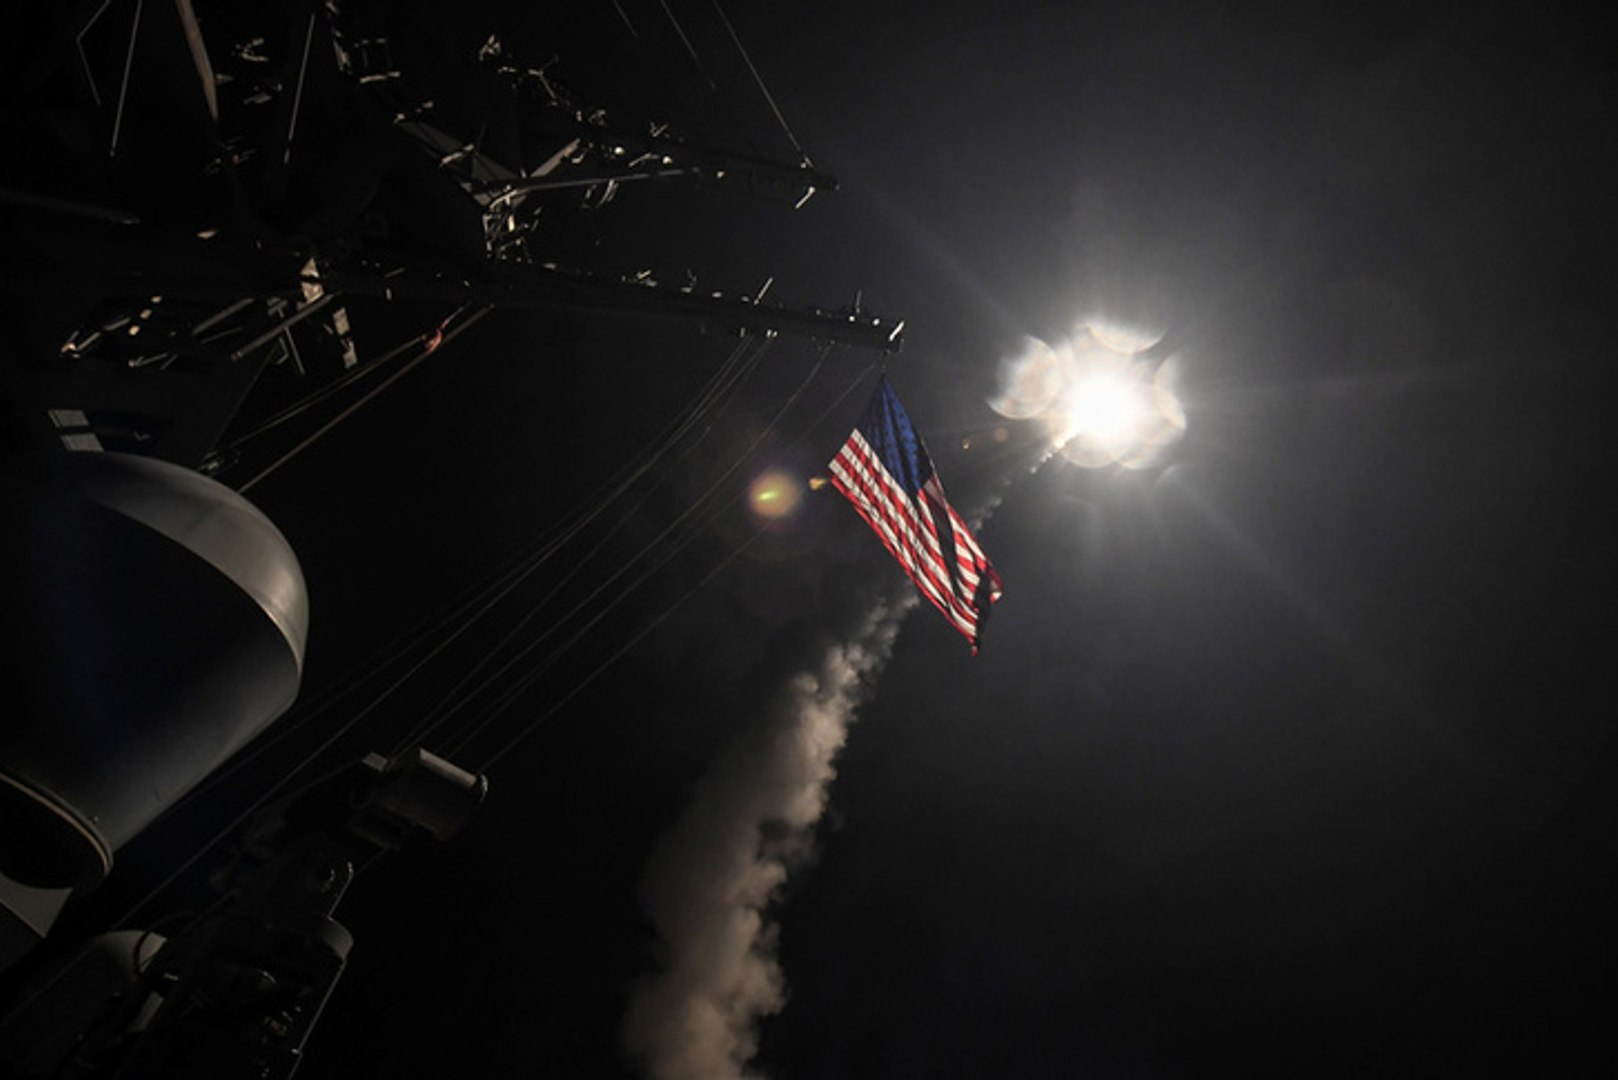 U.S. launches missiles at Syrian base over chemical weapons attack